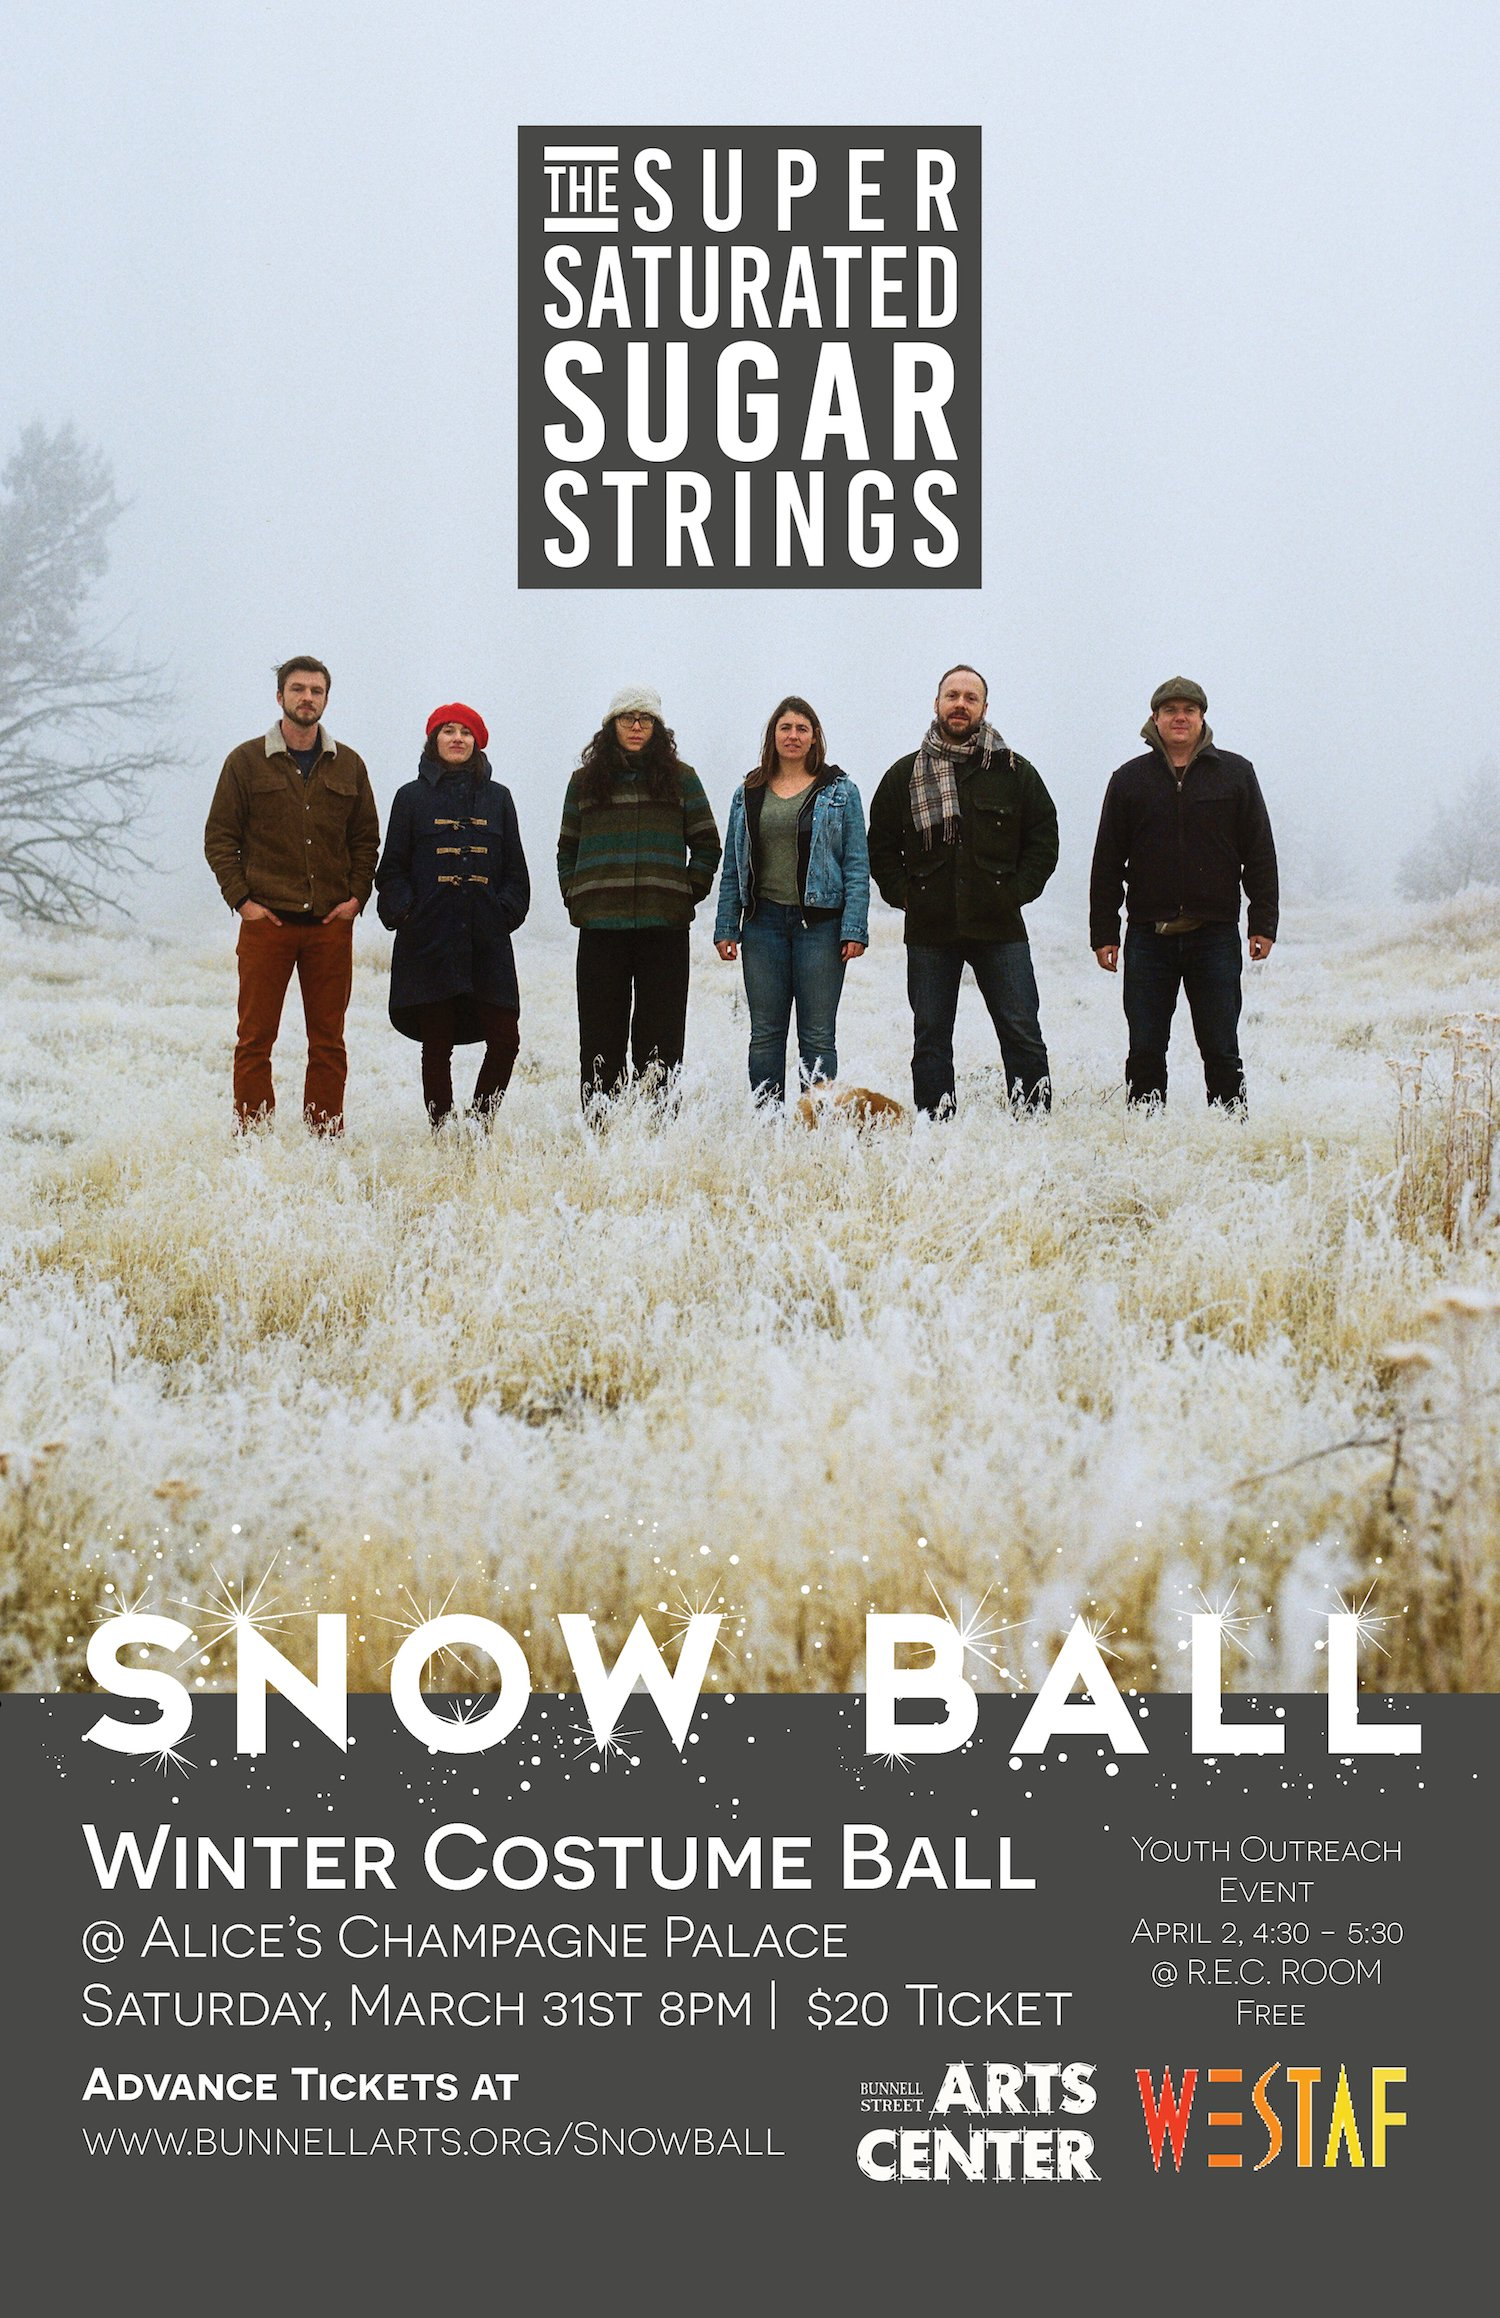 Super Saturated Snow Ball, March 31 @ Alice's 8pm